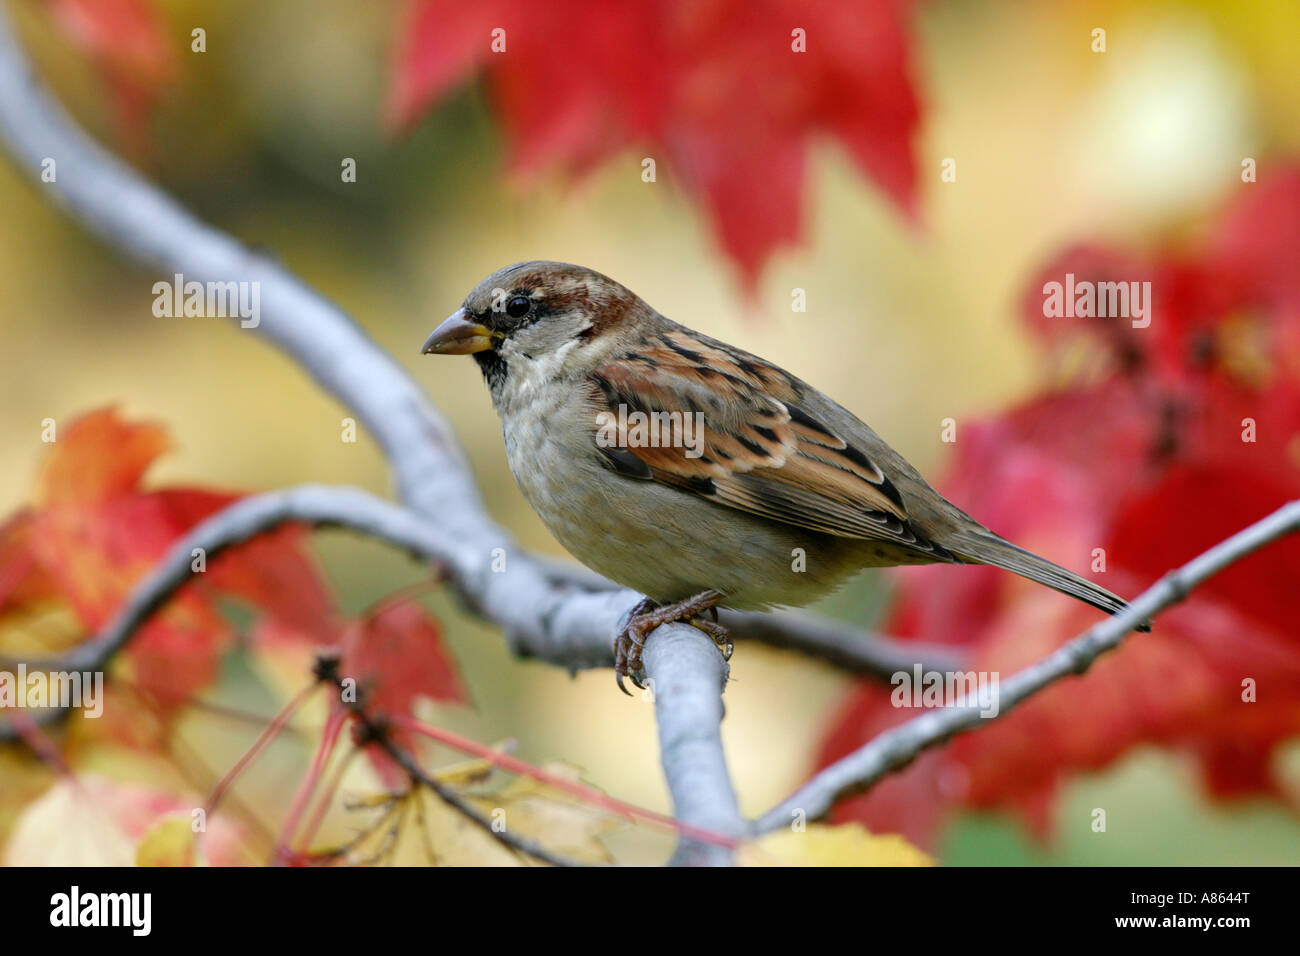 House Sparrow in Fall Maple Tree - Stock Image